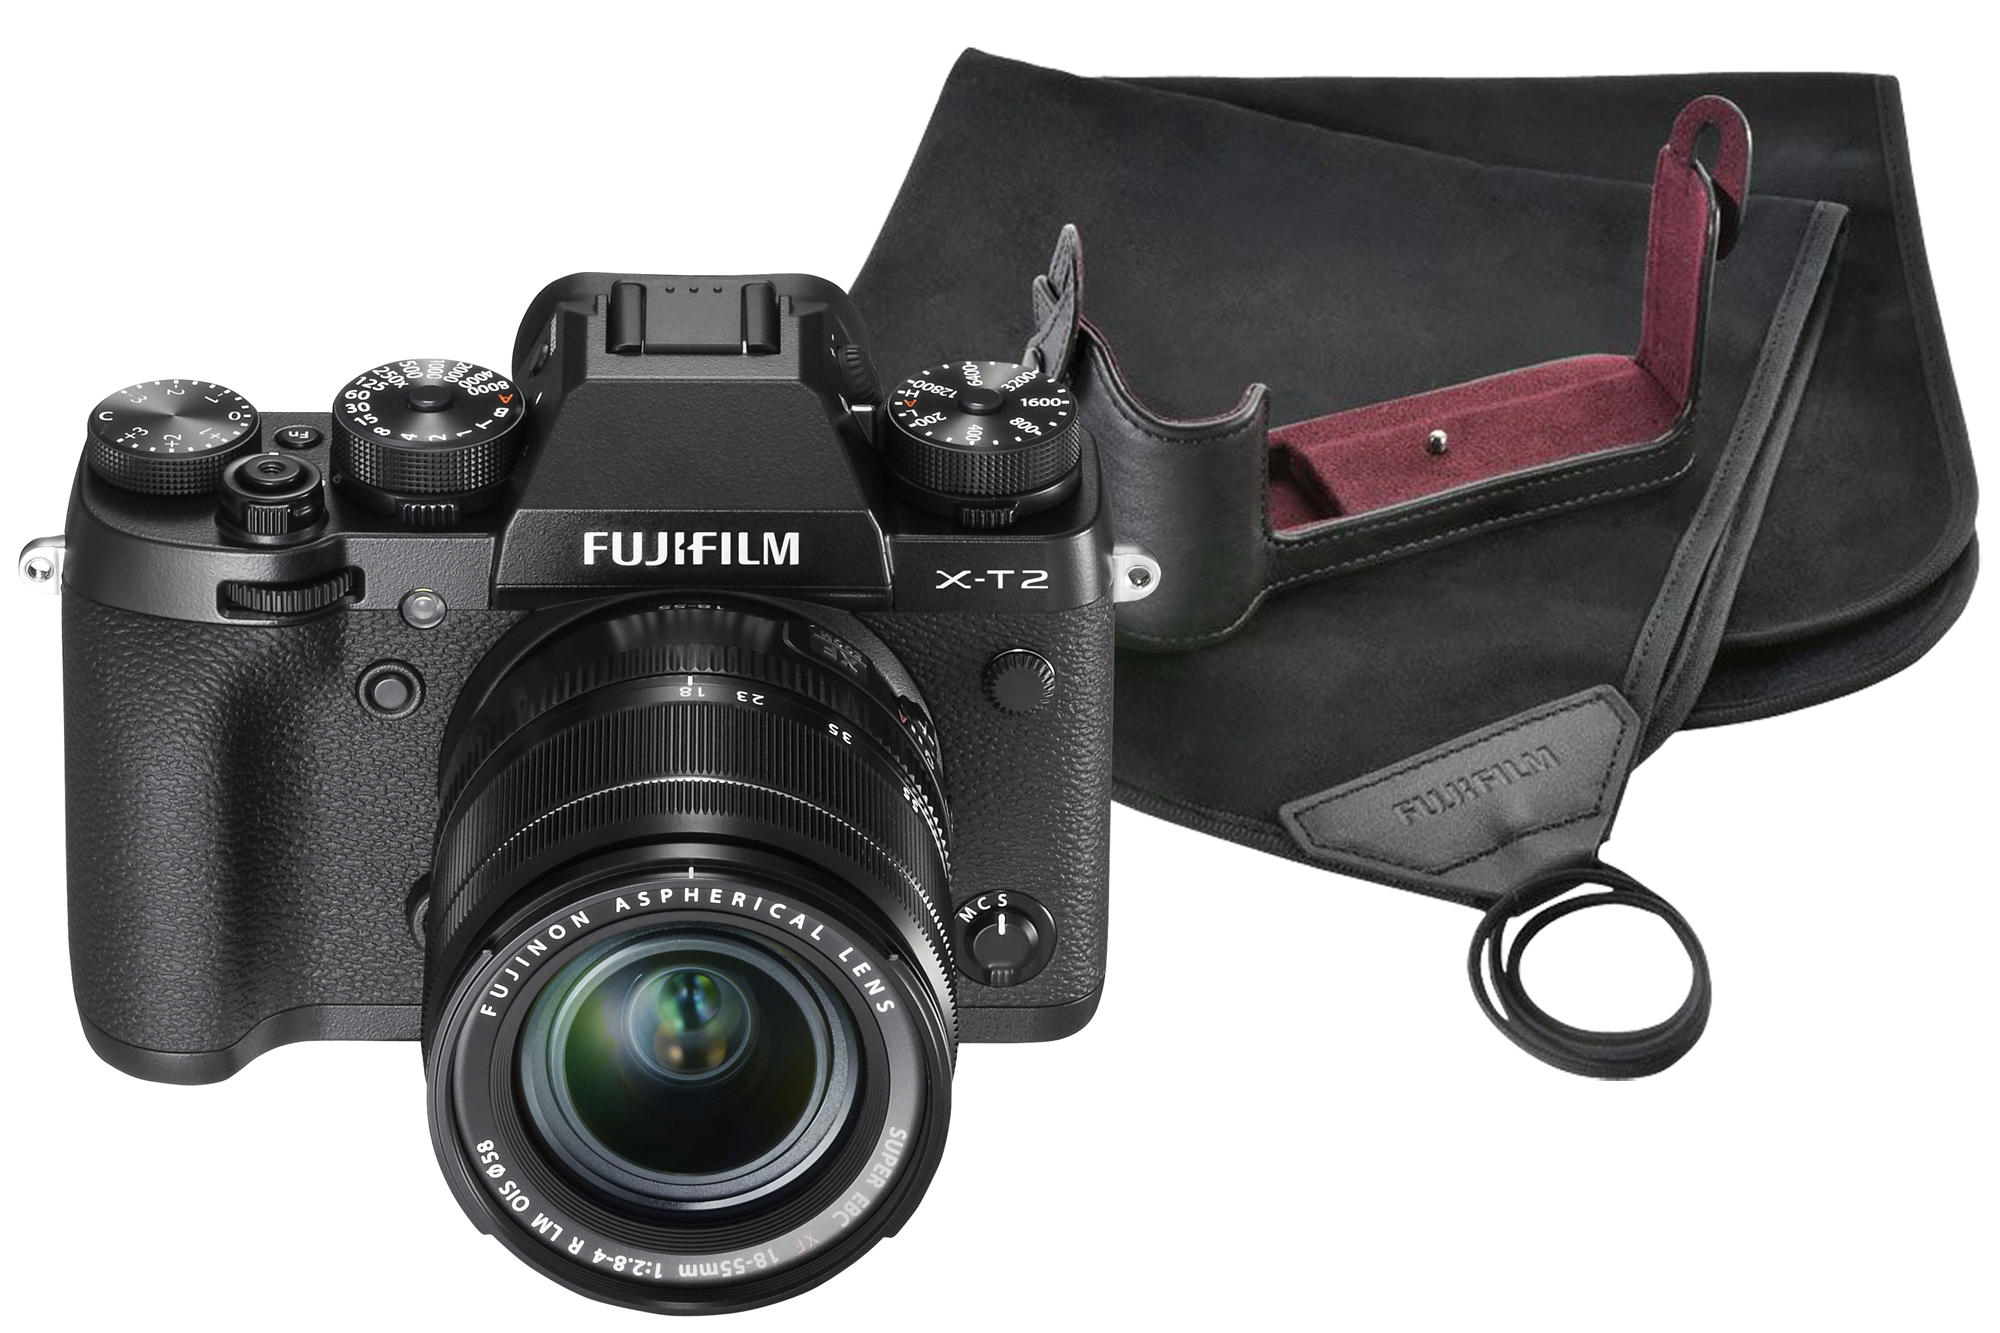 Fujifilm X-T2 Black Camera inc 18-55mm Lens, BLC-XT2 Leather Half Case & Cloth